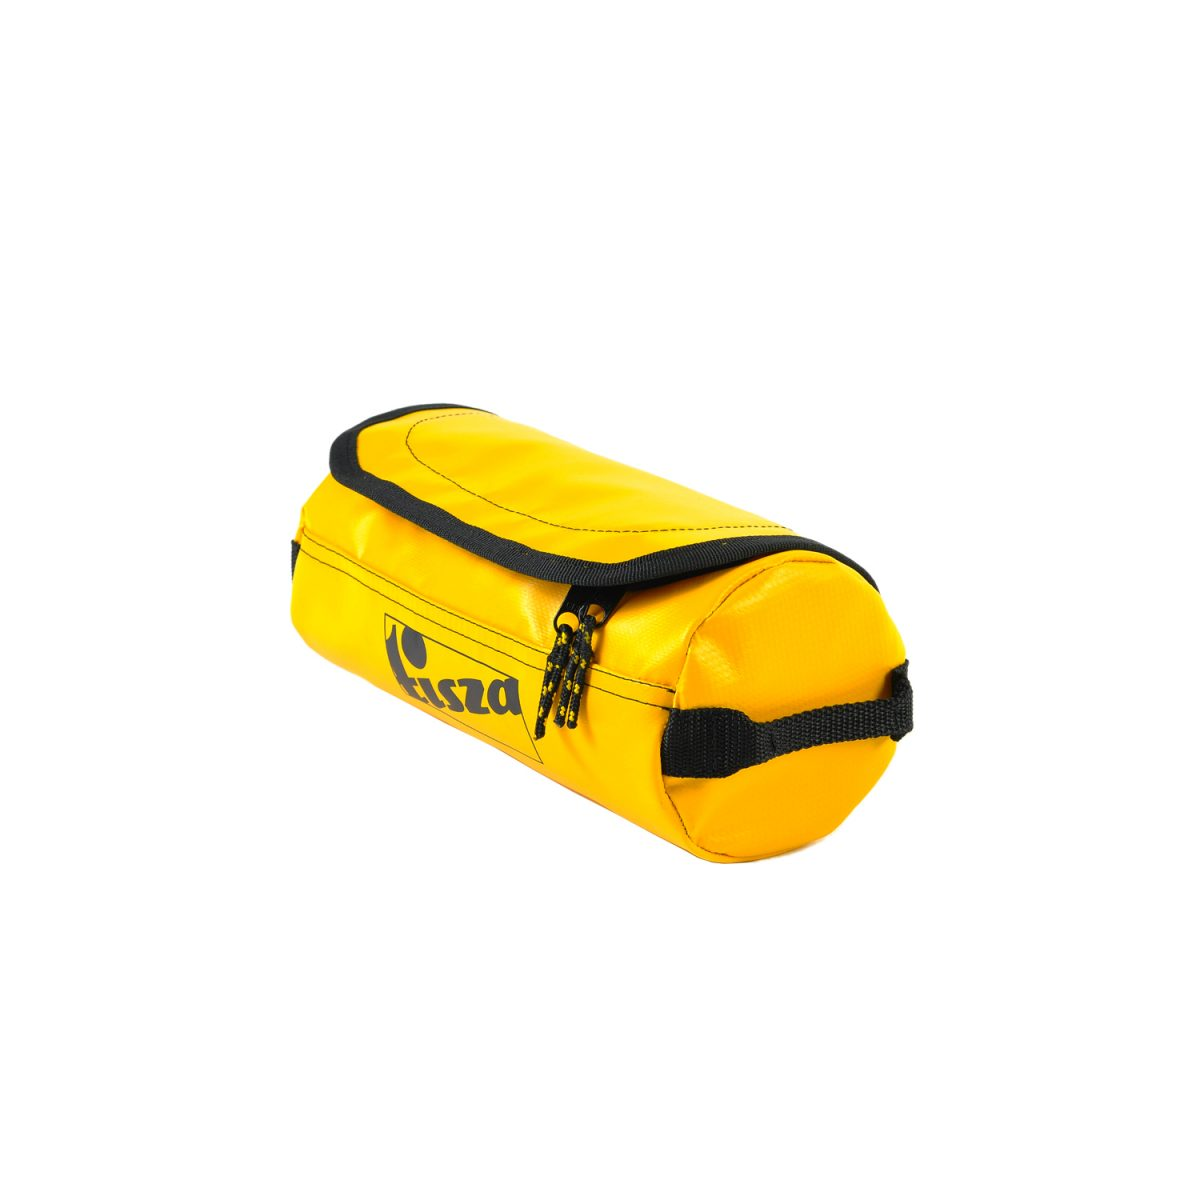 Tisza shoes - Toiletry bag - Yellow